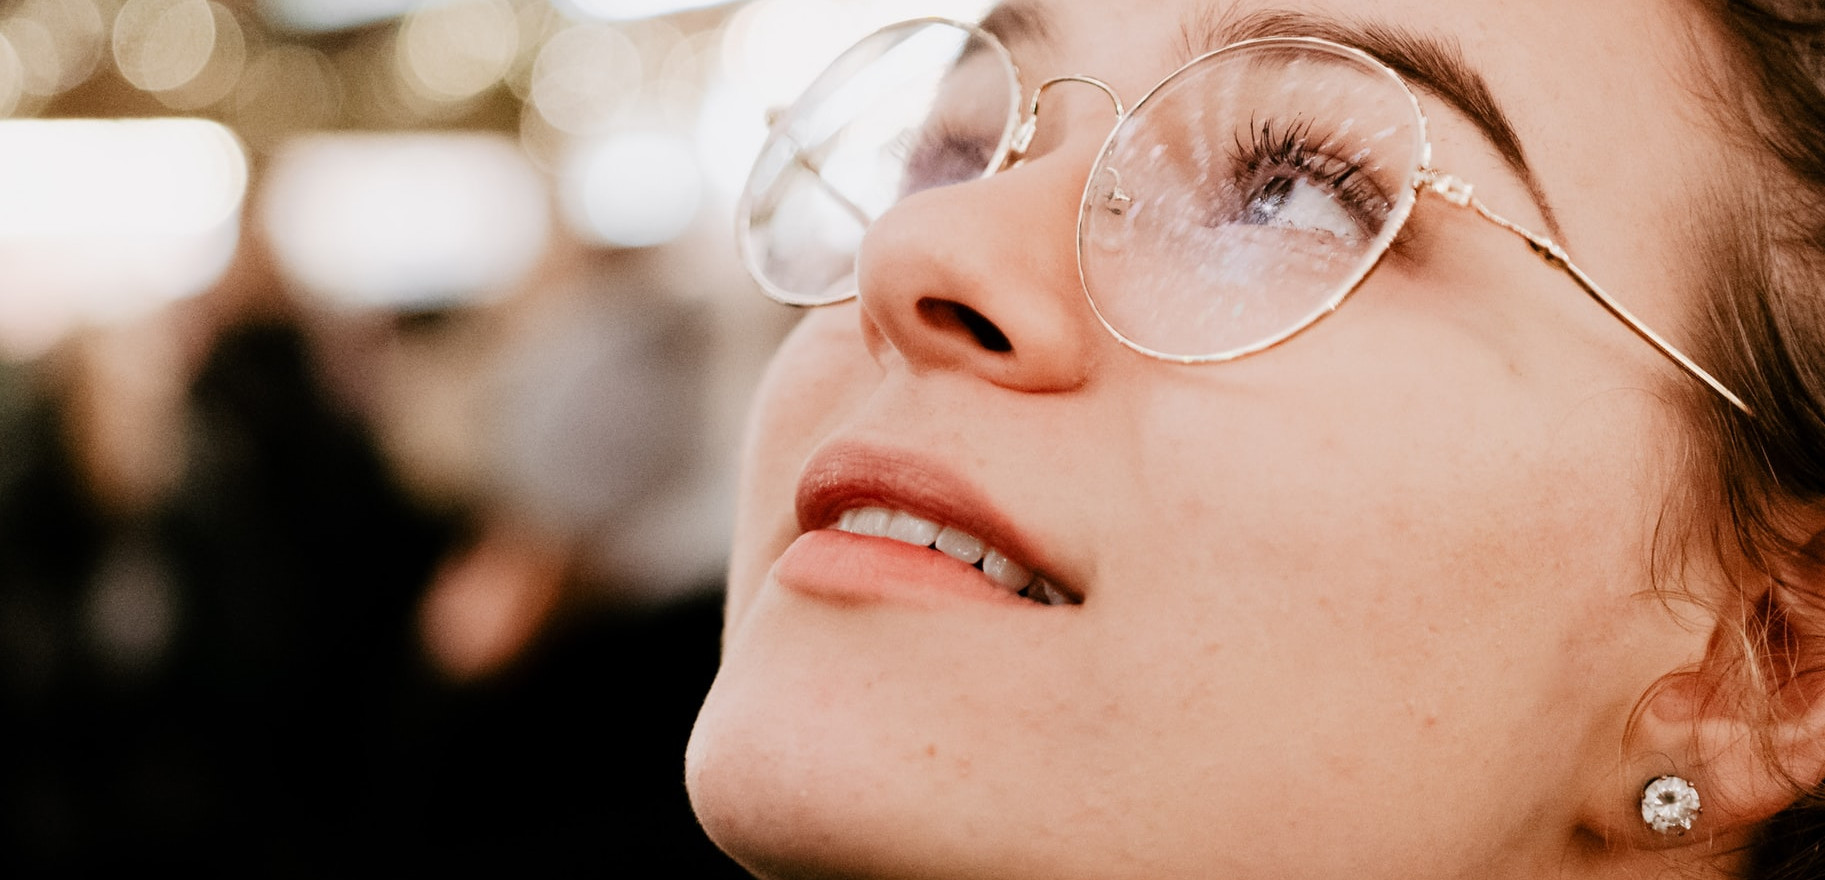 Round Glasses - Evergreen Trend That is Slowly Making a Comeback